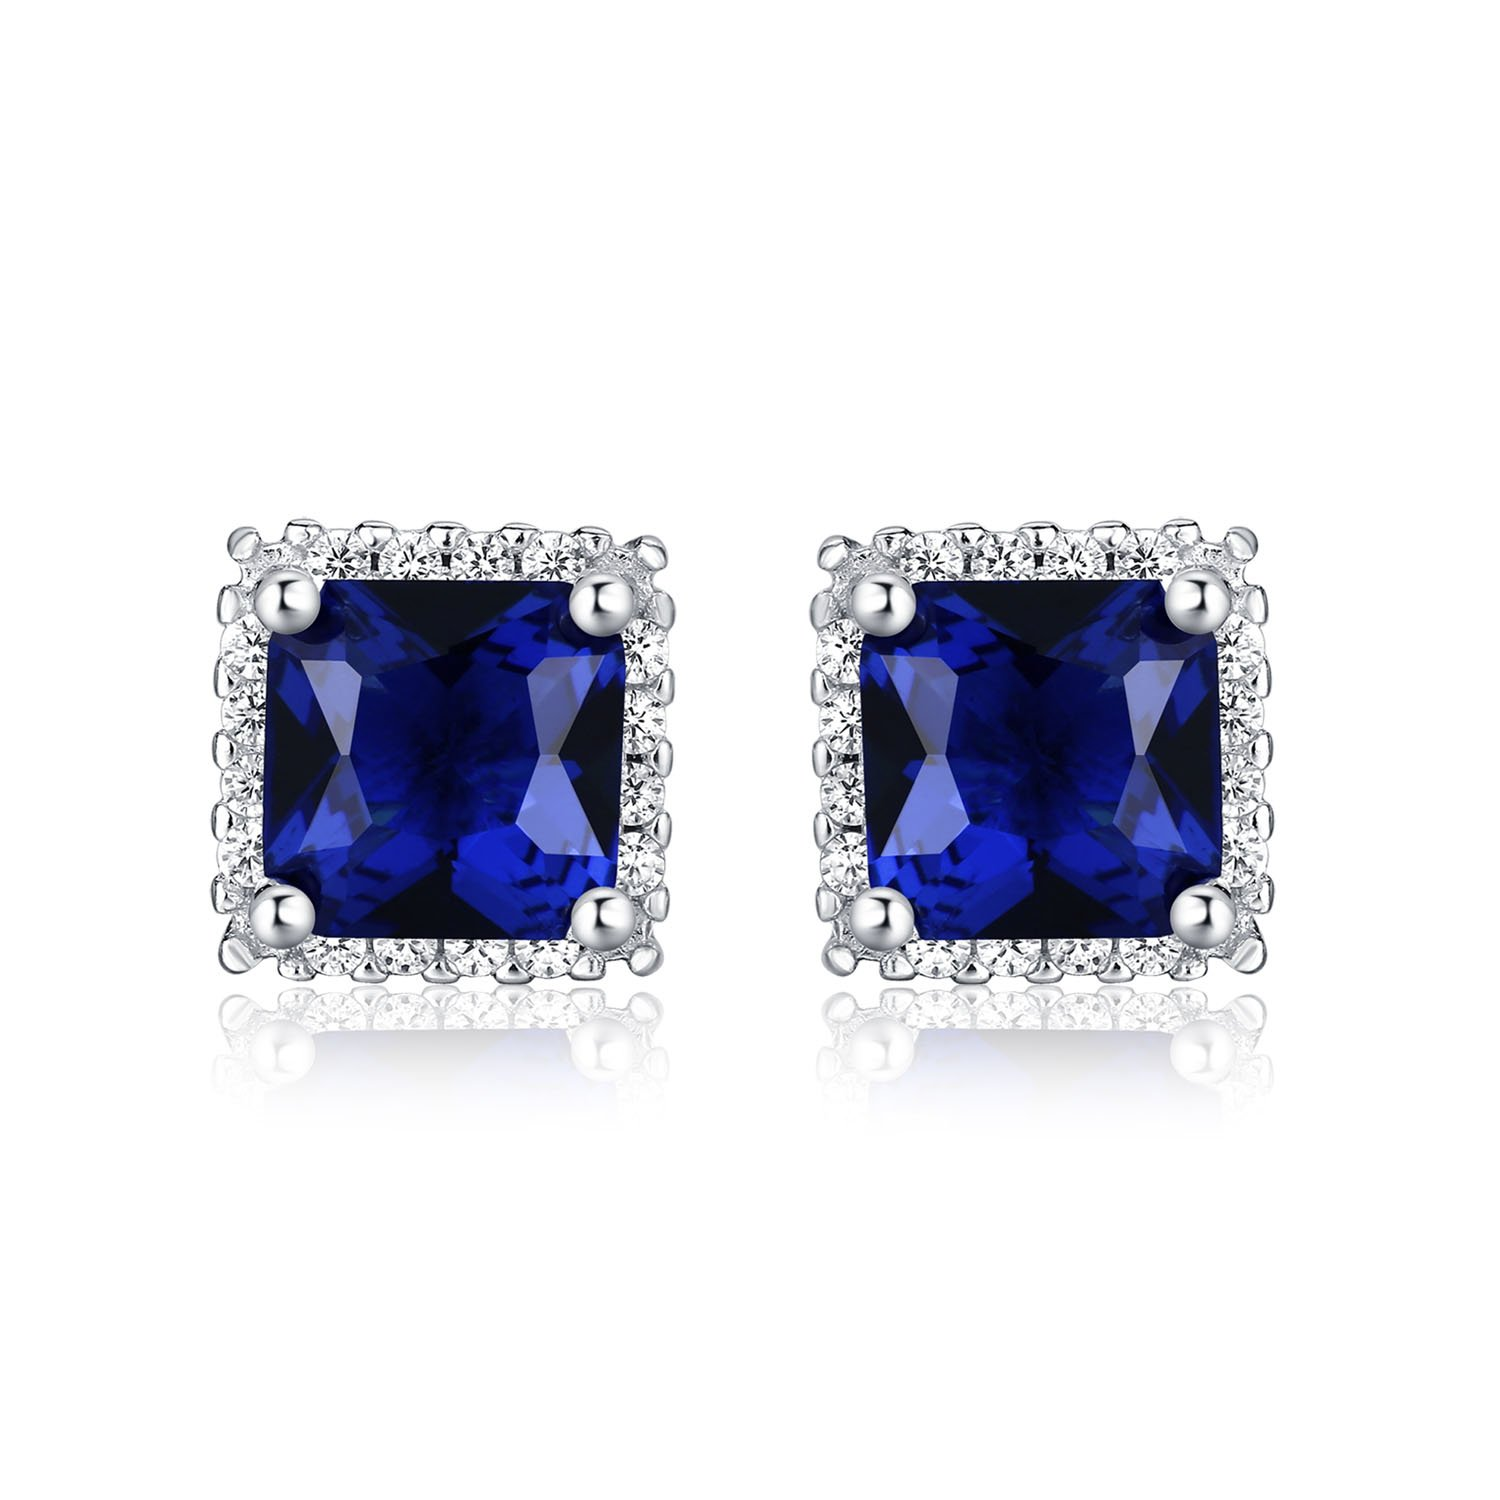 Diamond Treats 925 STERLING SILVER Earrings with Simulated Sparkling